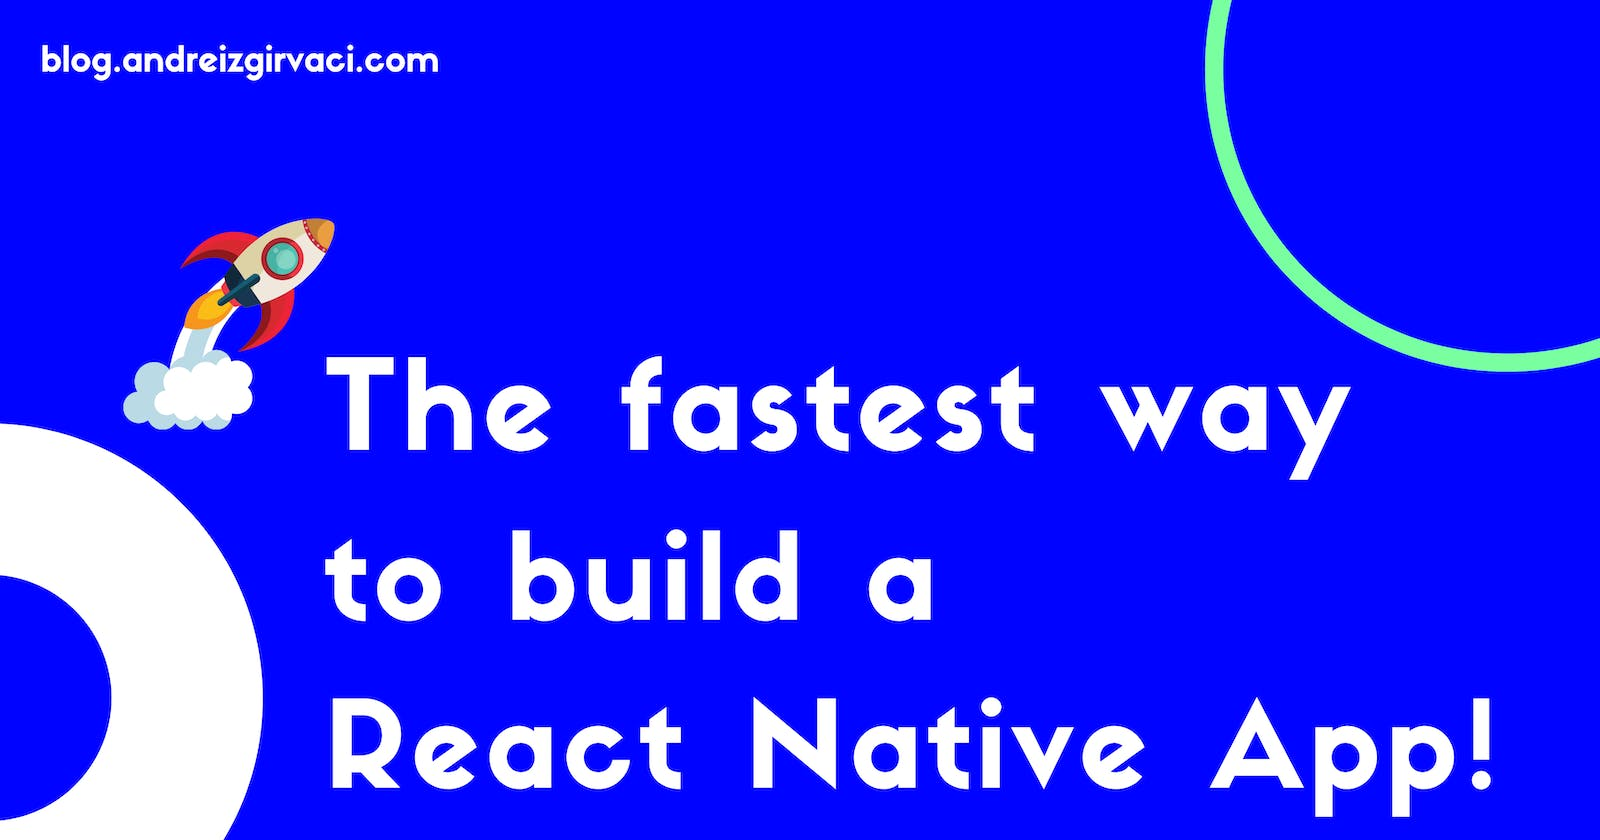 The fastest way to build a React Native App! 🚀